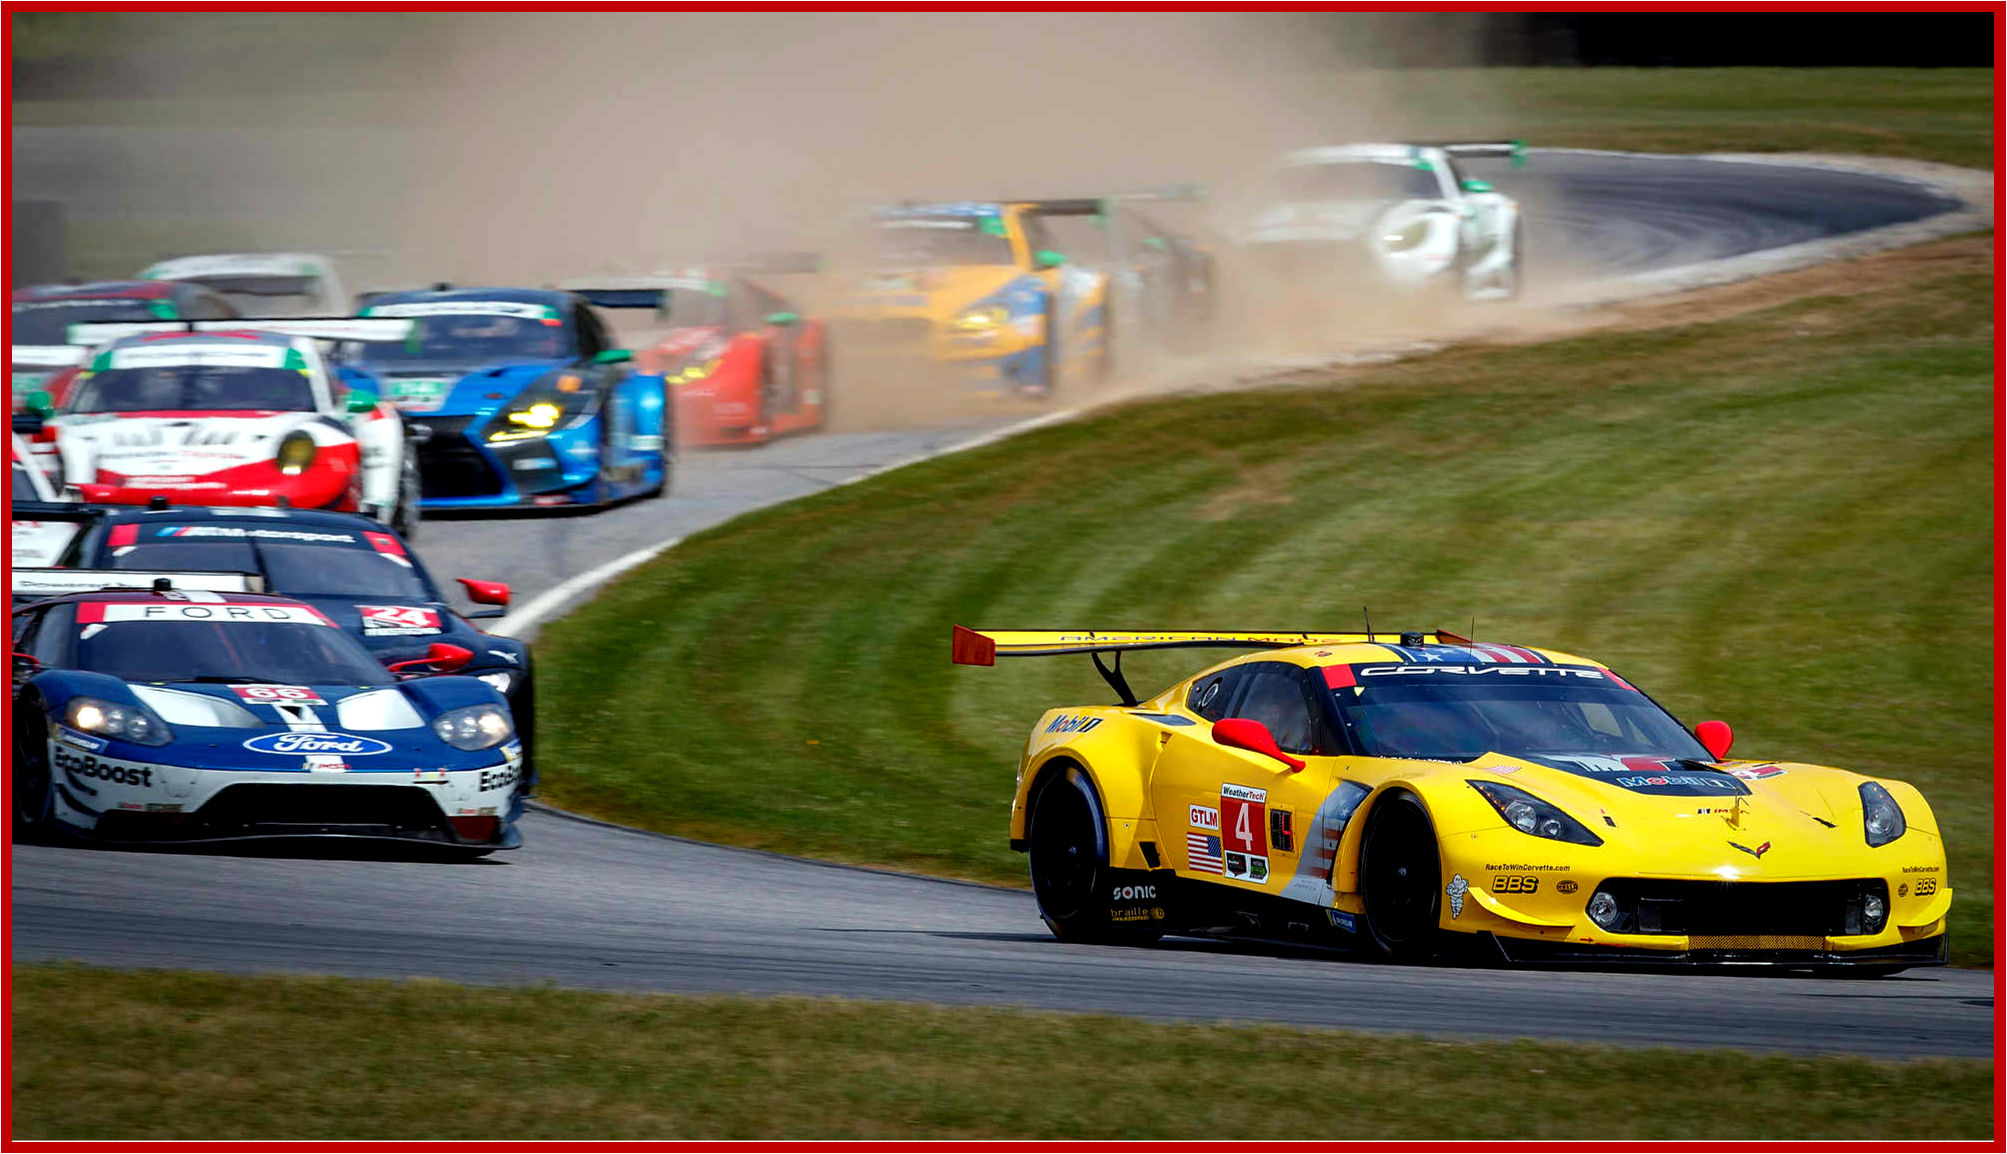 AutoInformed.com on IMSA Racing. Photo by Richard Prince for Chevy Racing